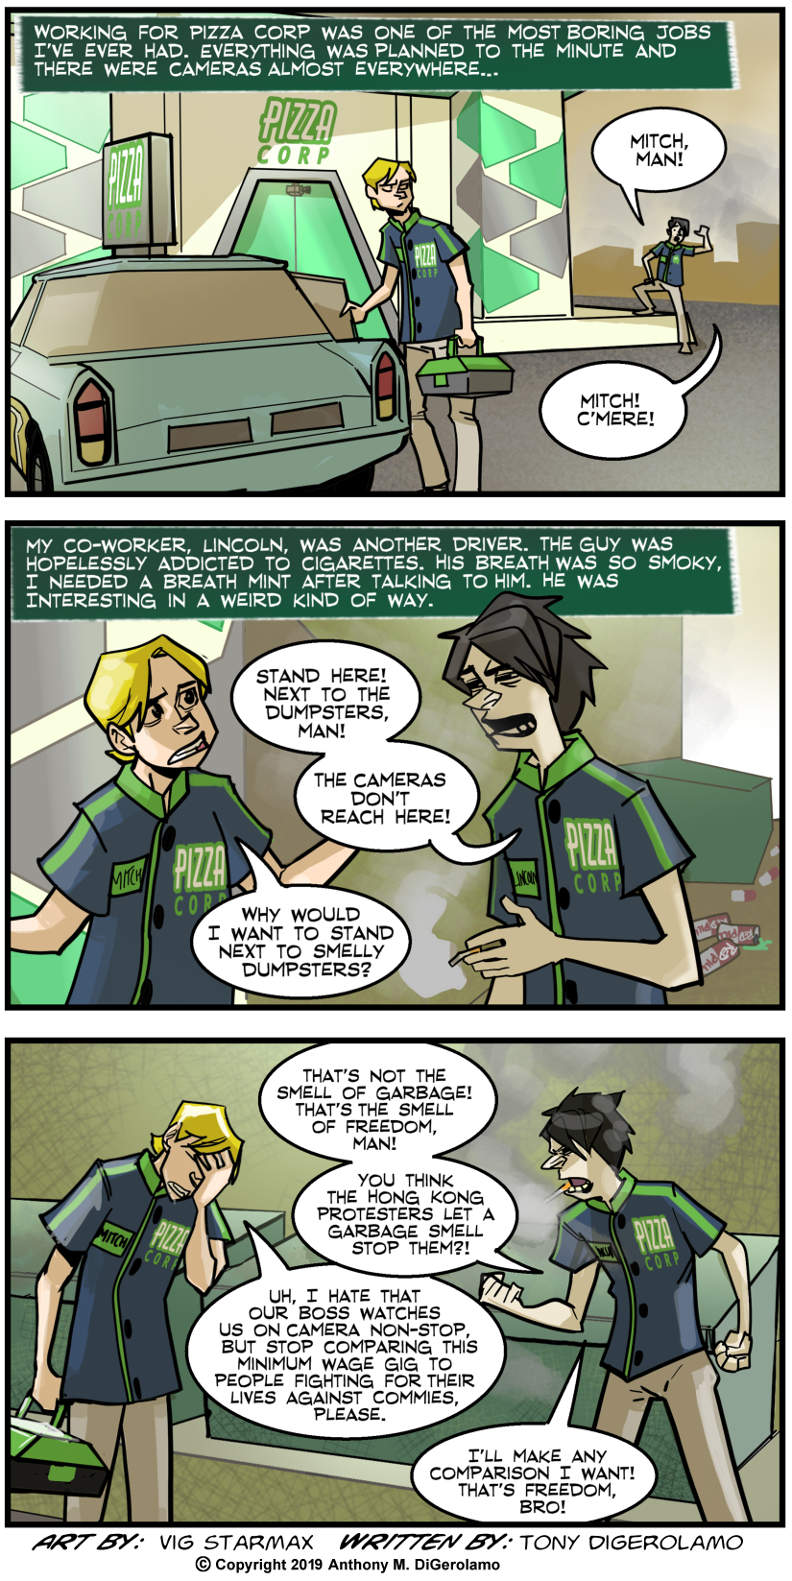 Tales of Pizza:  Freedom's Just Another Word